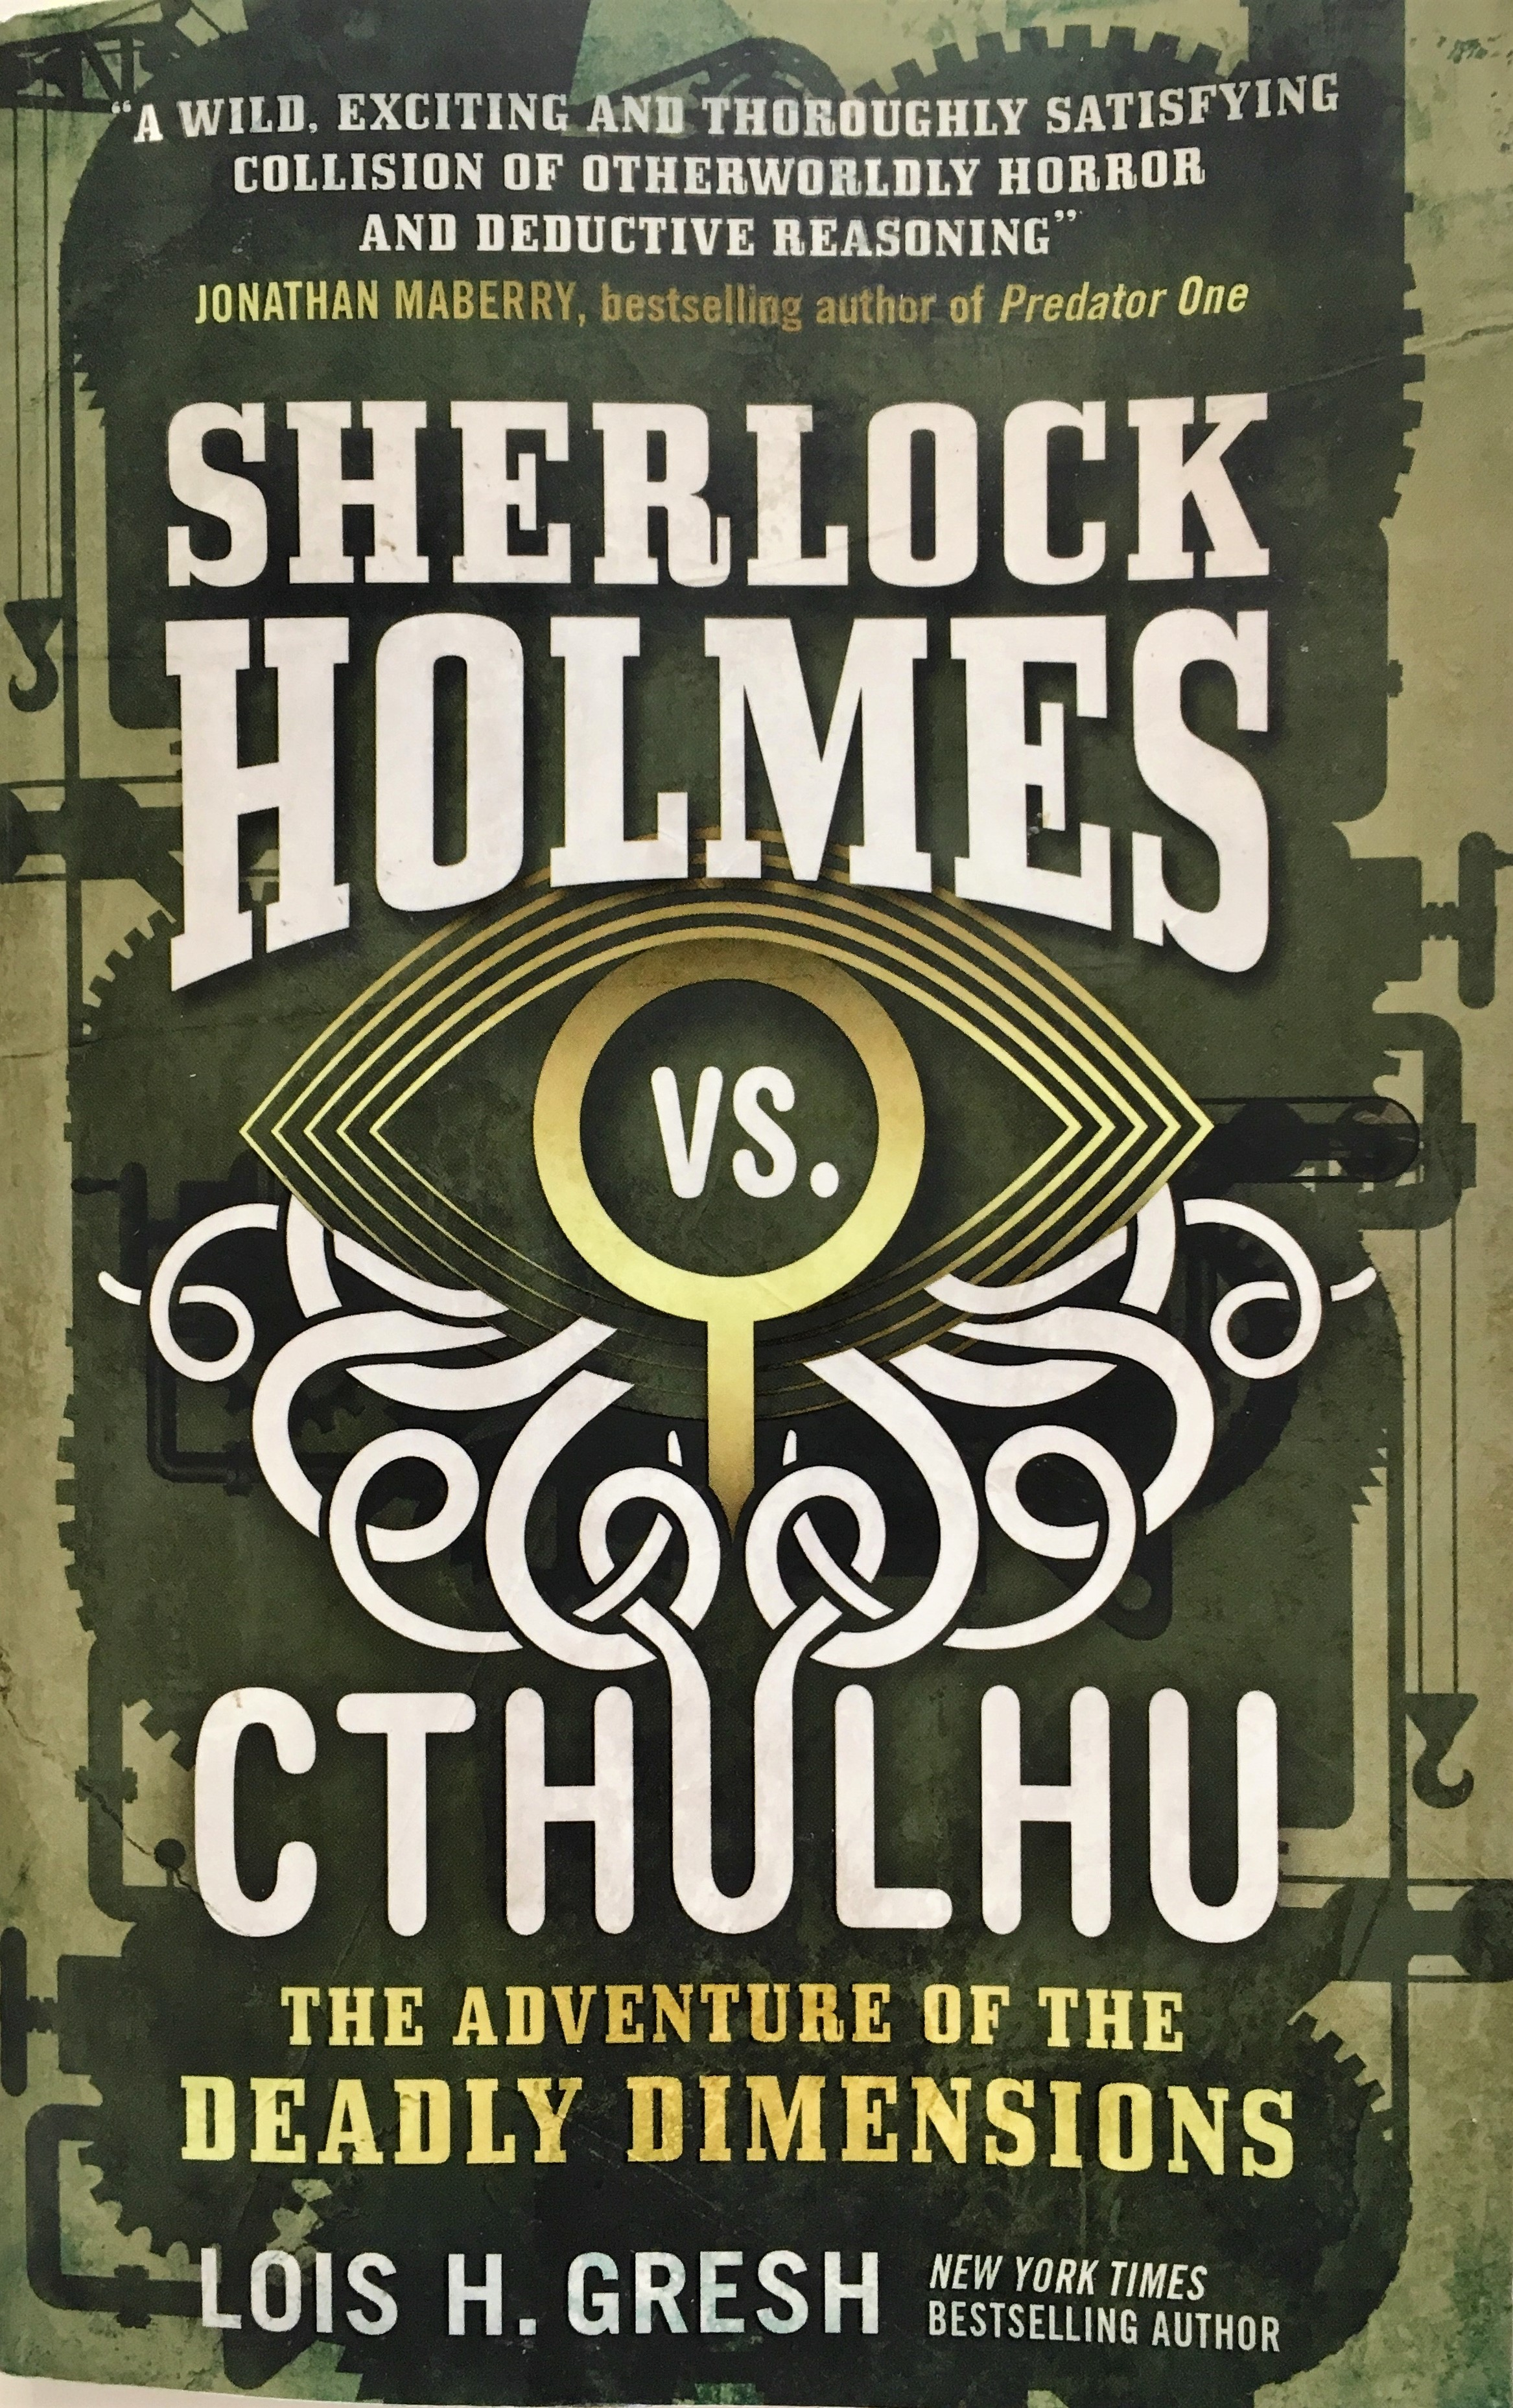 Gresh, Lois H. Sherlock Holmes vs. Cthulhu: The Adventure of the Deadly Dimensions, London: Titan Books, 2017.